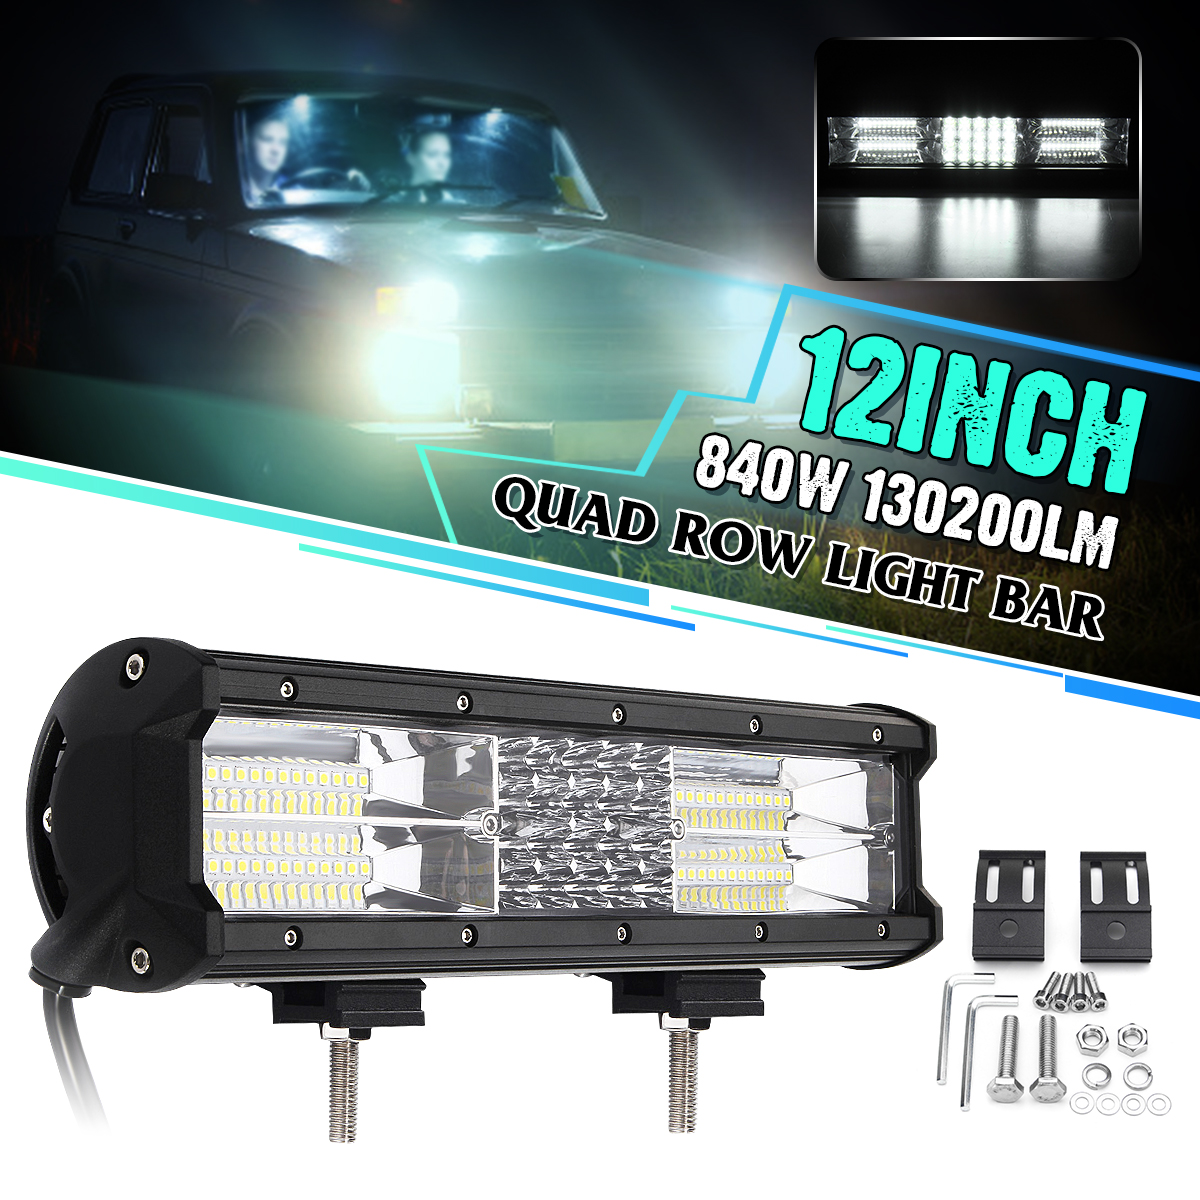 12 Inch 68LED Work Light Bar 840W Flood Spot Combo Driving Lamp Waterproof LED Work Light For SUV ATV Offroad 4WD Car Truck 32 inch 1070w 5d curved led work light bar spot flood combo light bar work light offroad driving lamp suv atv car truck